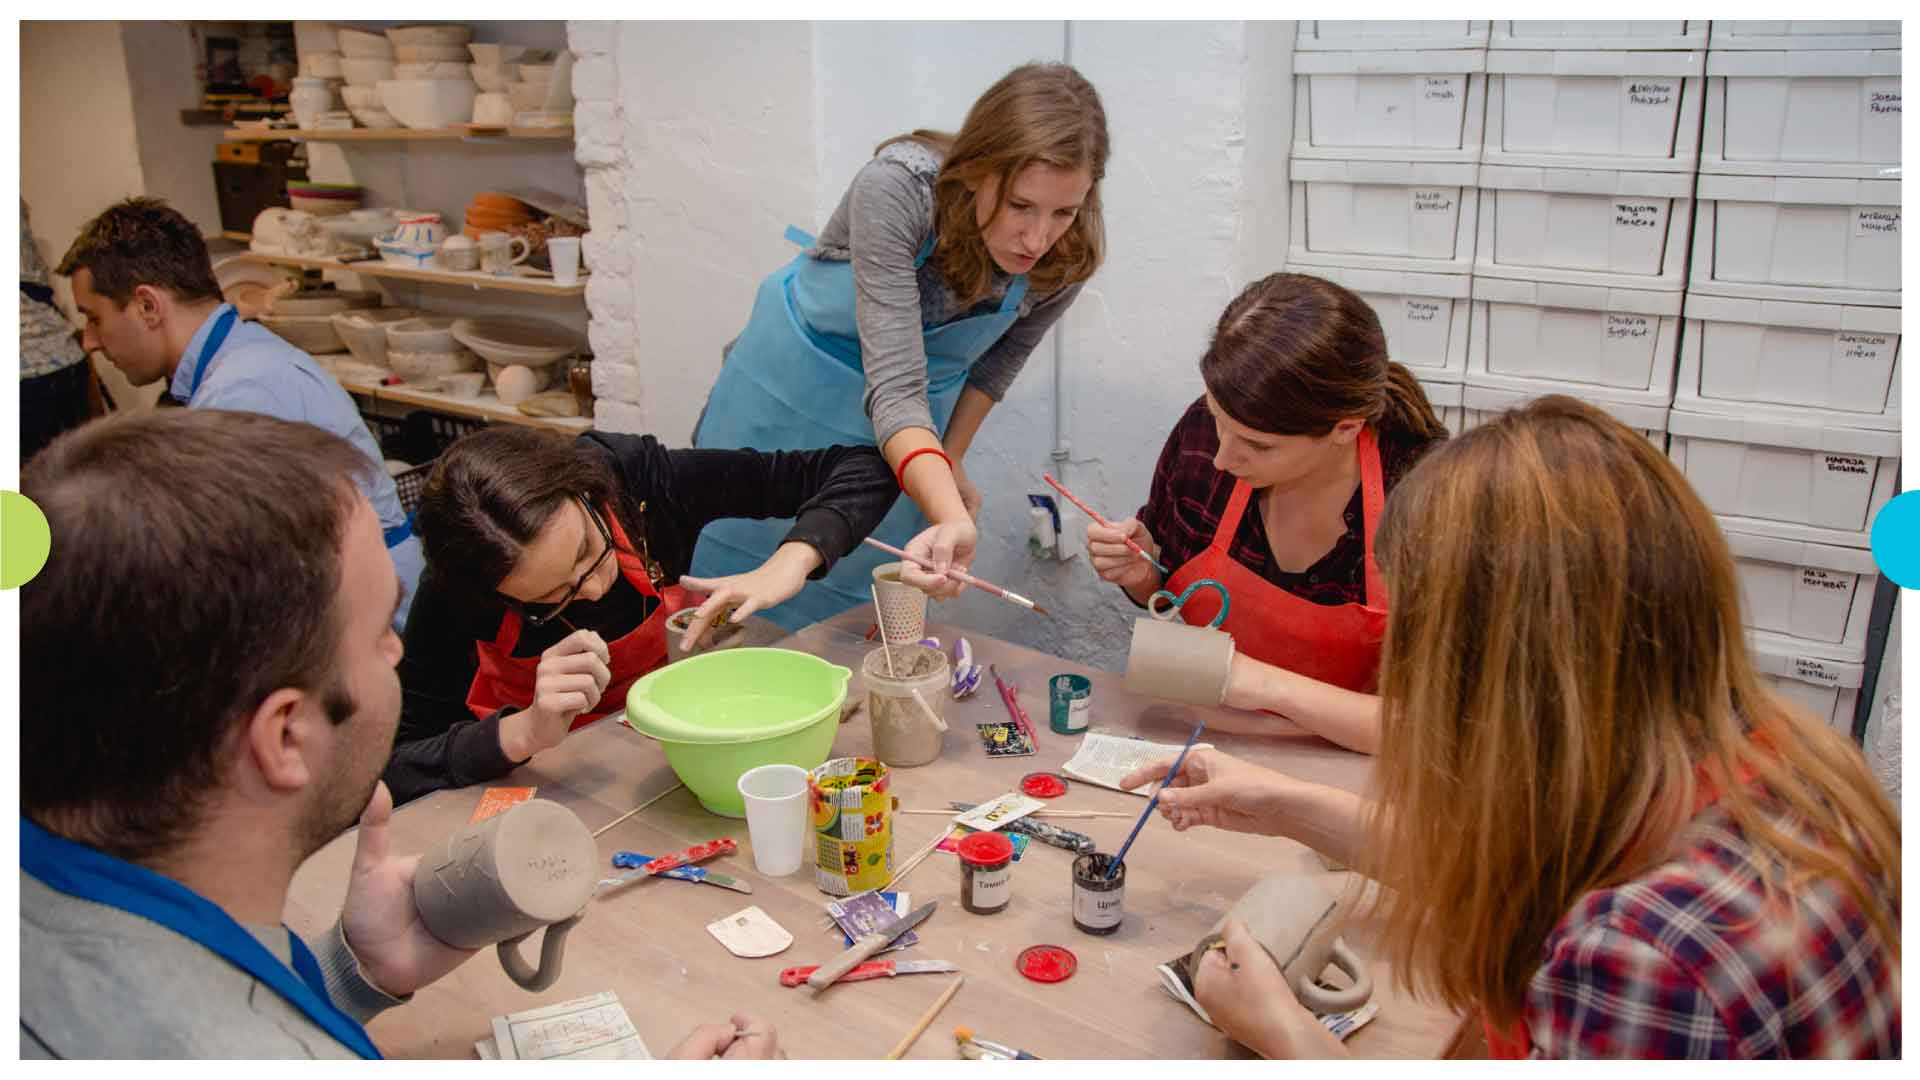 Smart Vision Teambuilding – Making Ceramic Products 8